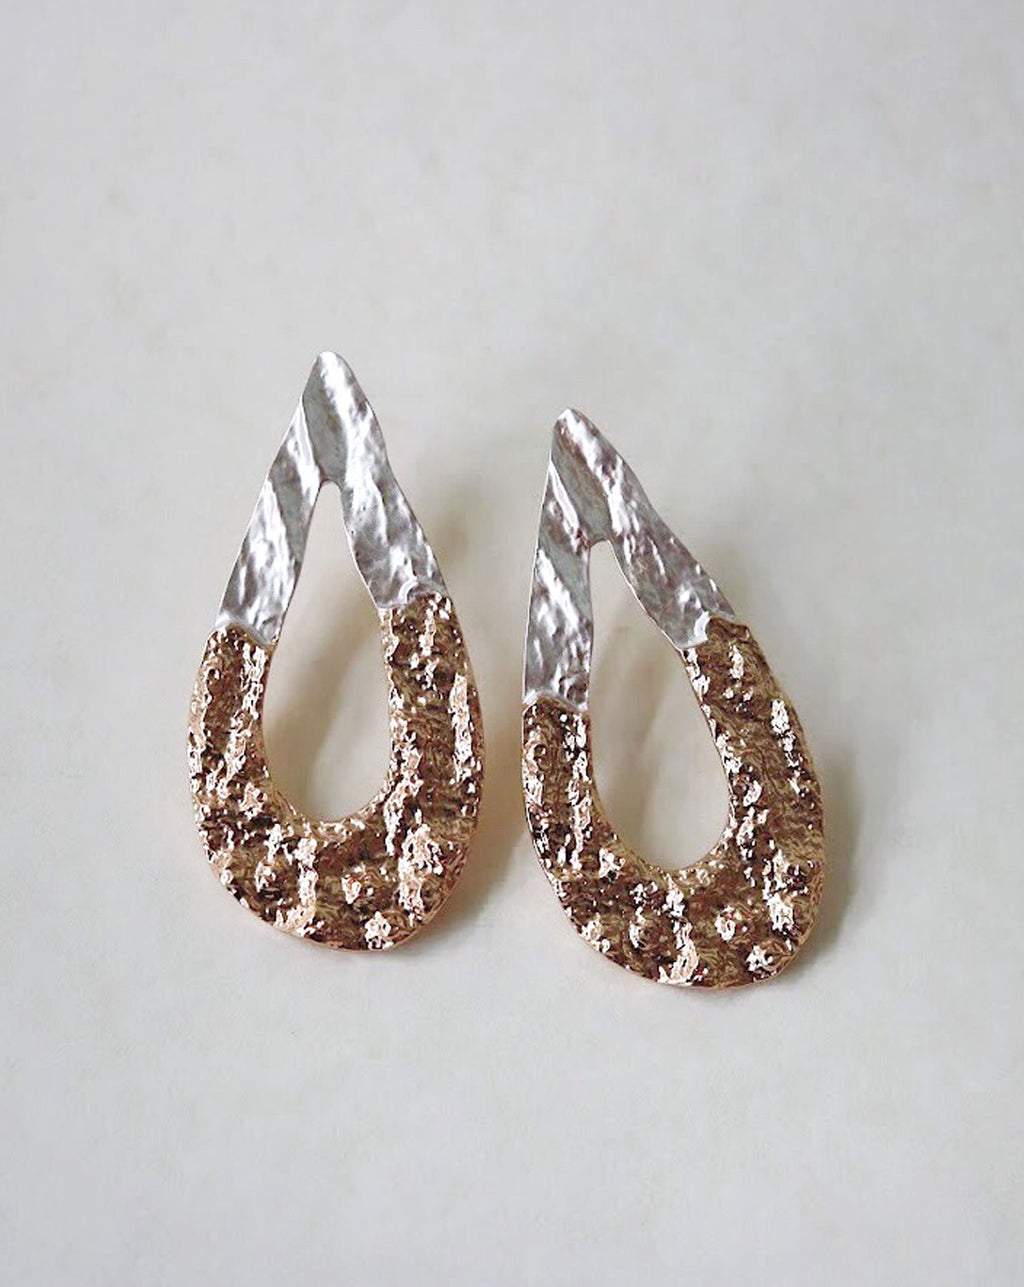 MIDAS Teardrop Earrings - The Hexad Jewelry